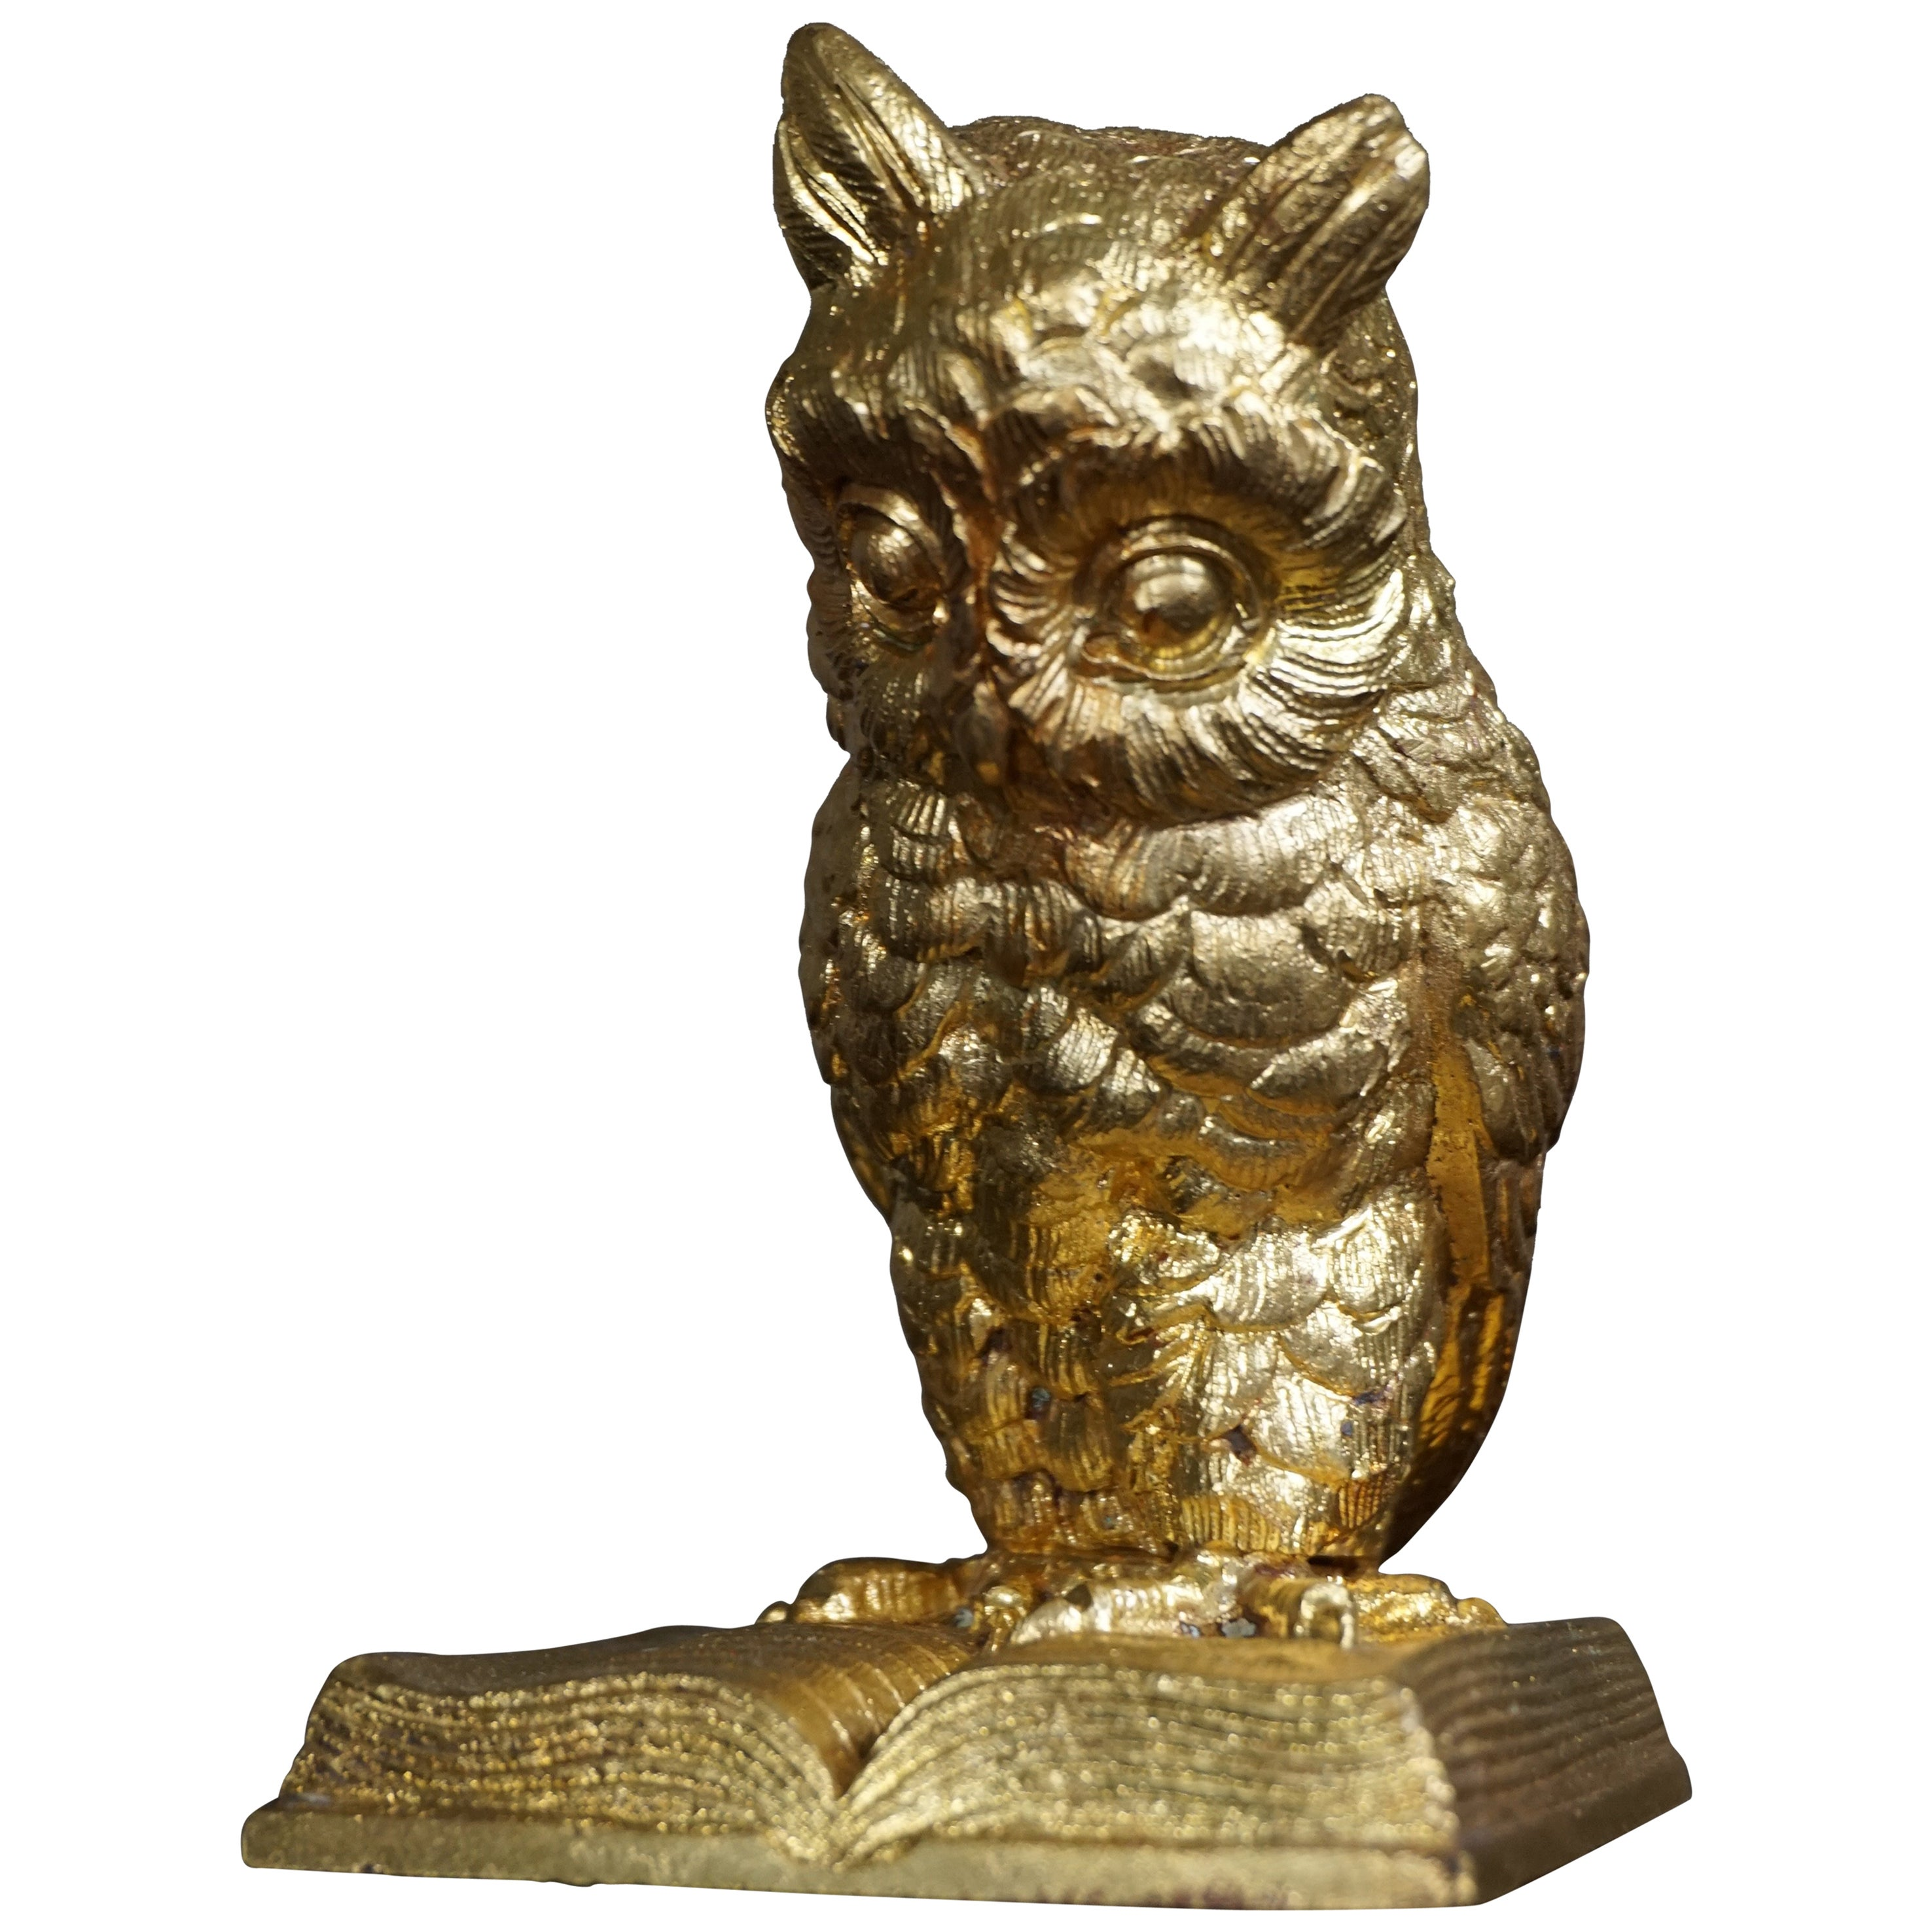 Late 19th Century Small Antique Gilt Bronze Owl on Book Sculpture ...